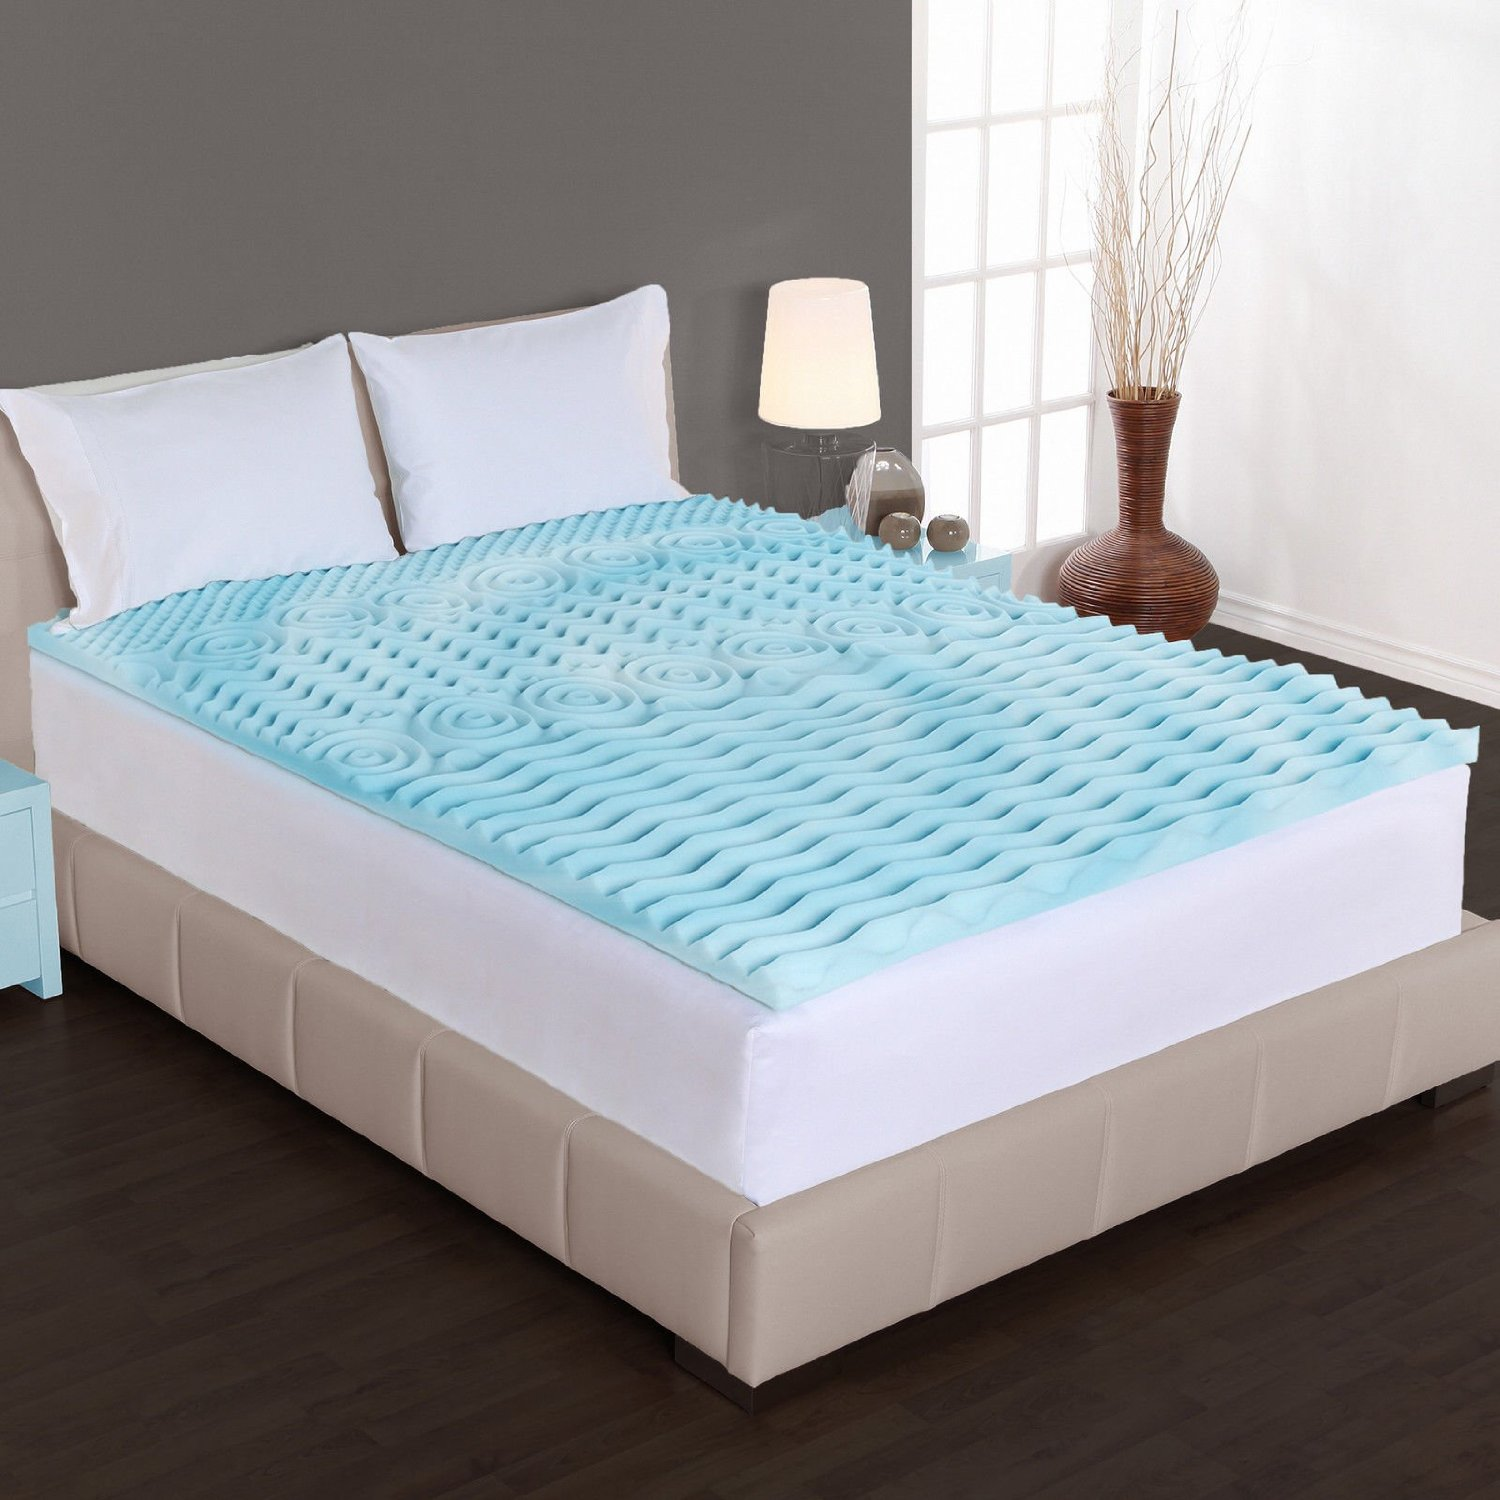 Cooling Mattress Pad for TempurPedic that Will Make You